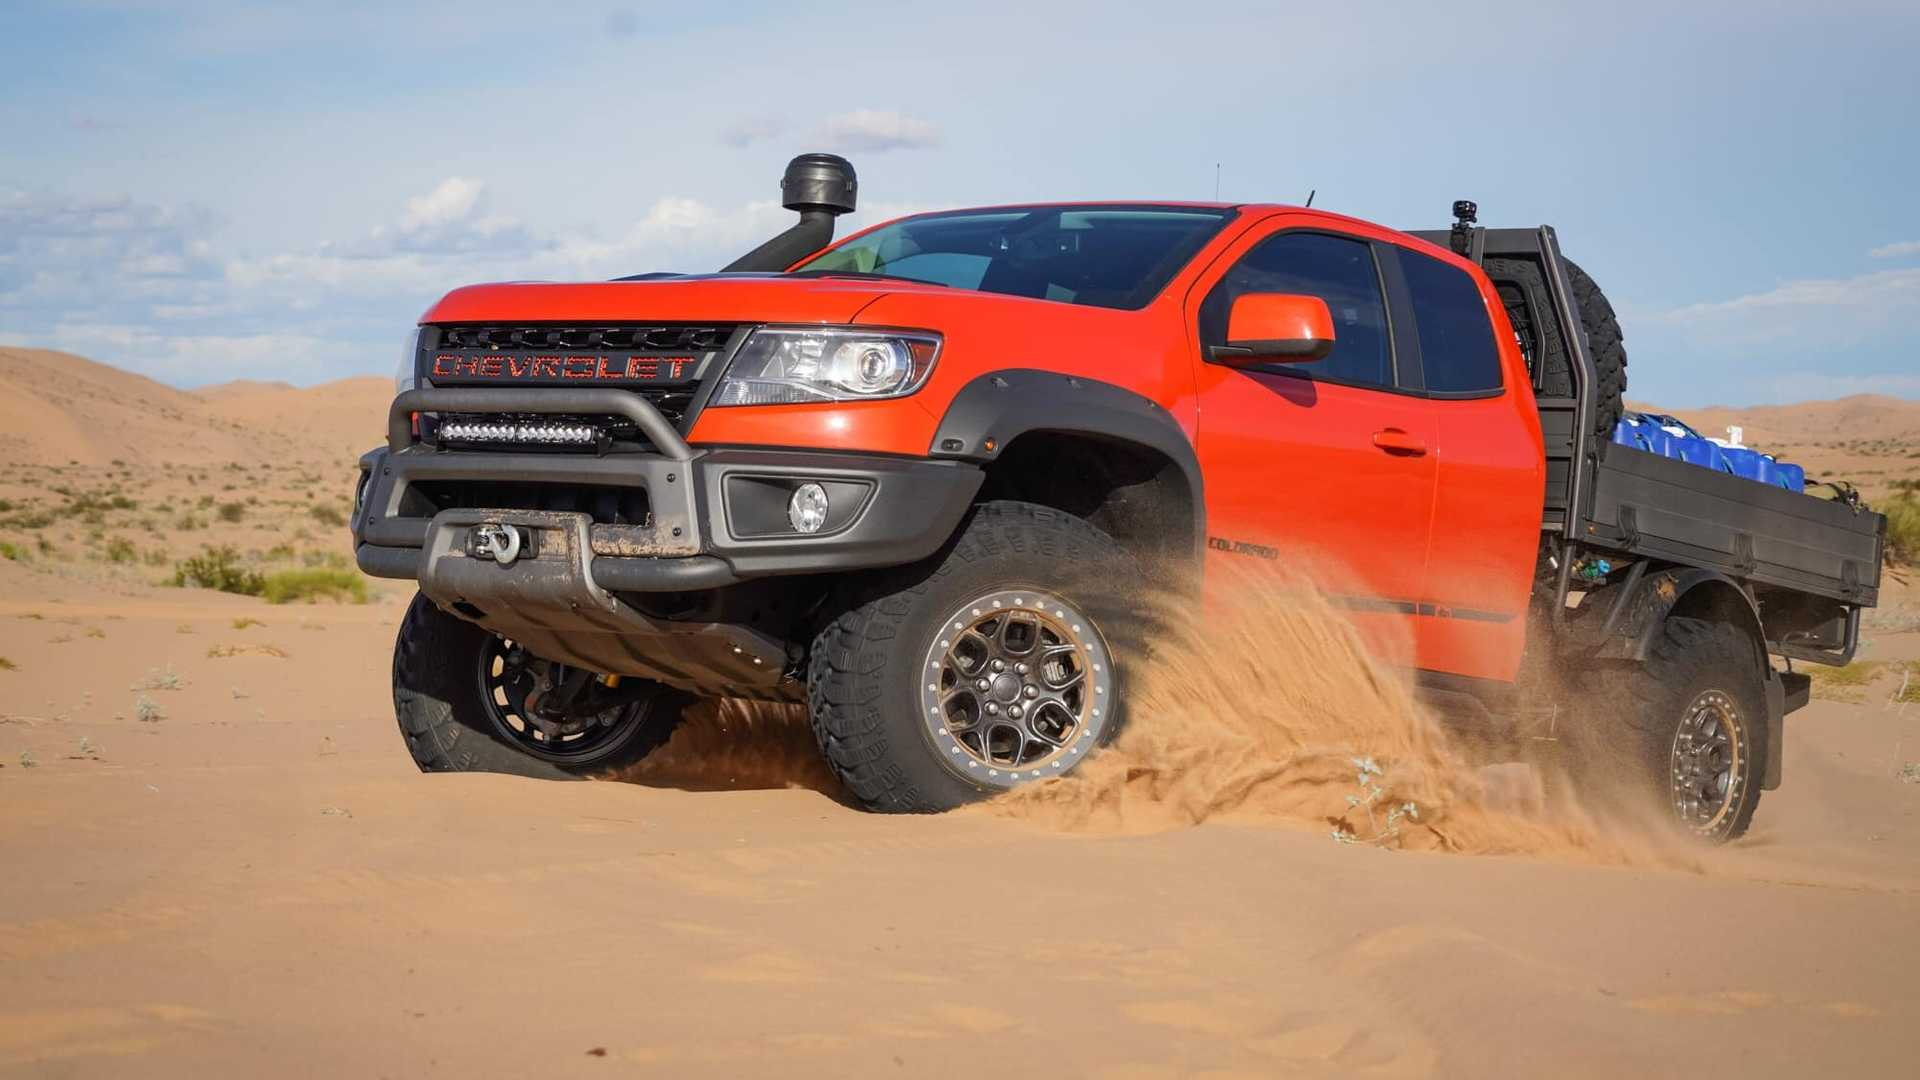 Chevrolet_Colorado_Bison_ZR2_Tray_Bed_concept_by_AEV0001